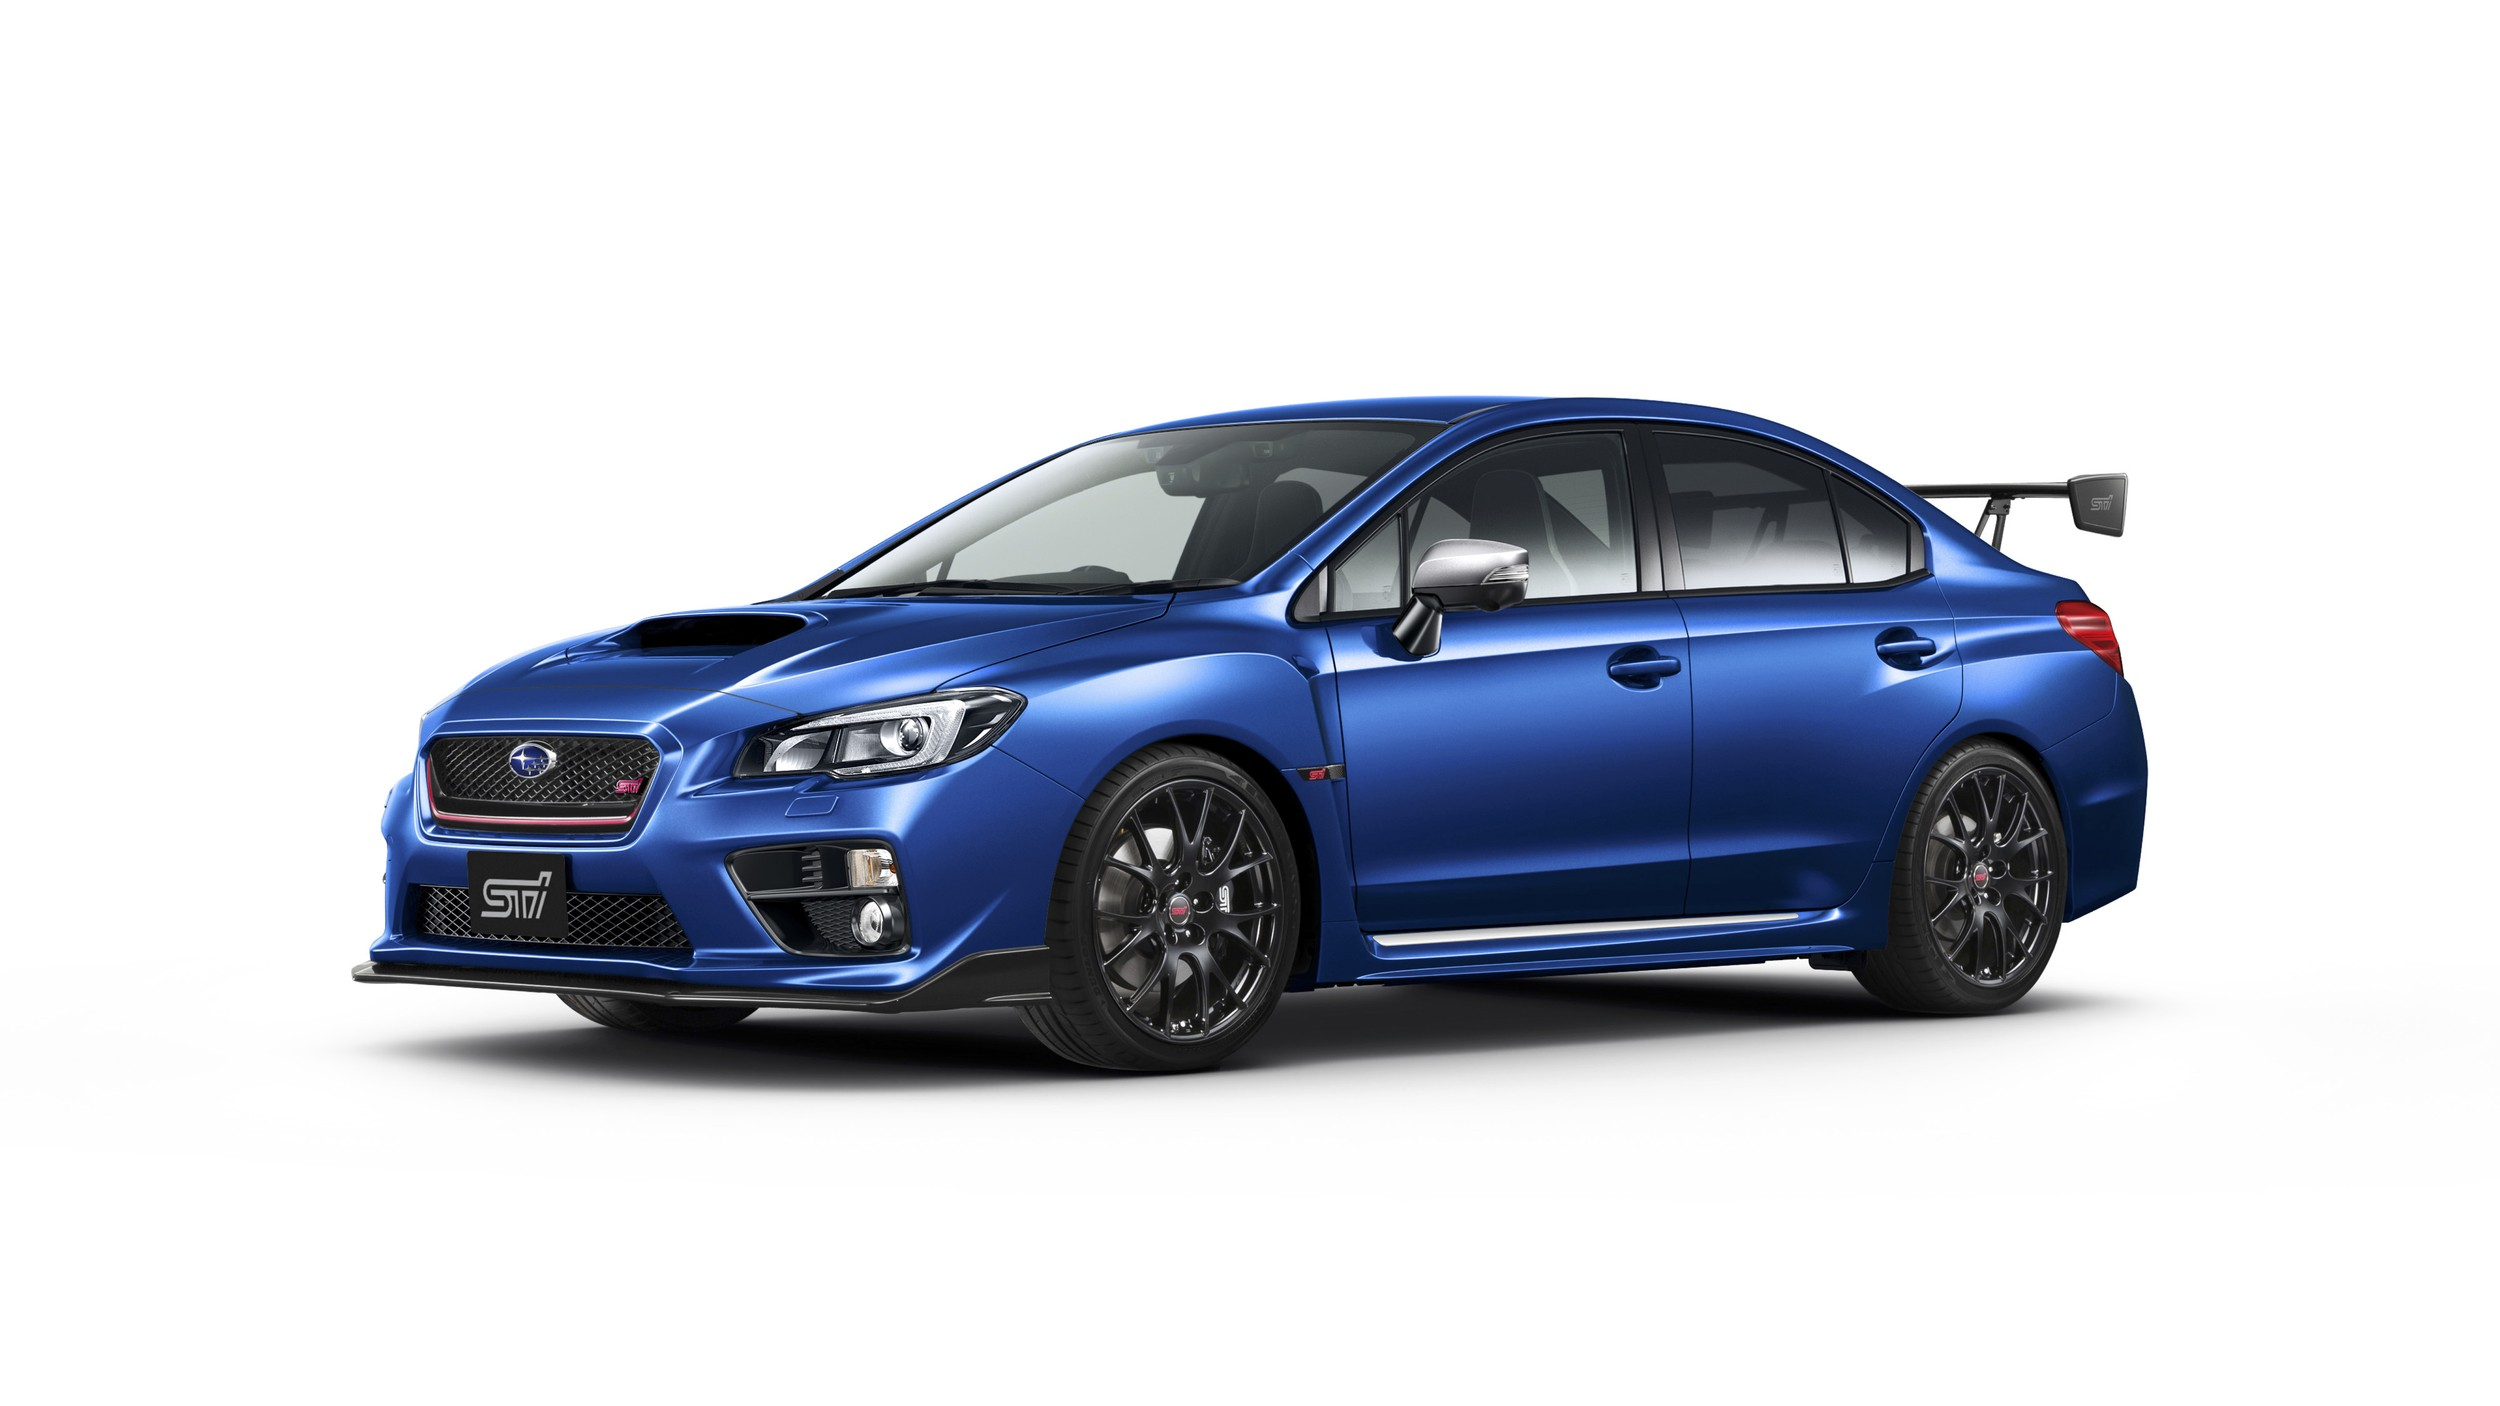 2017 Subaru WRX S4 tS Special Edition Launched In Japan ...